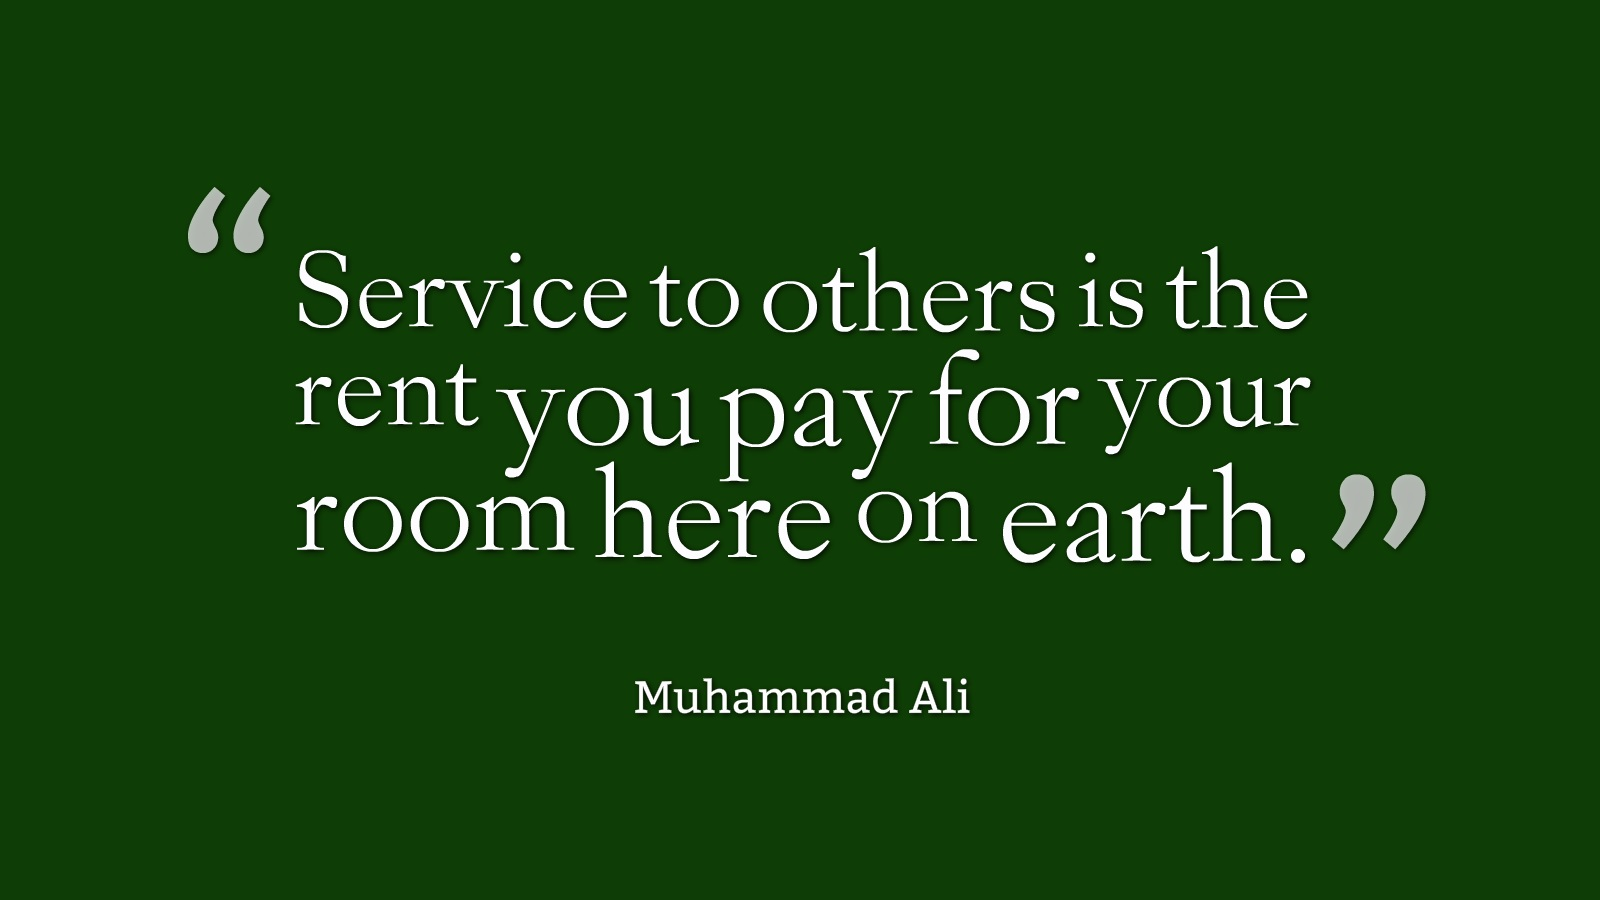 Quotes about Service and helping others (17 quotes)